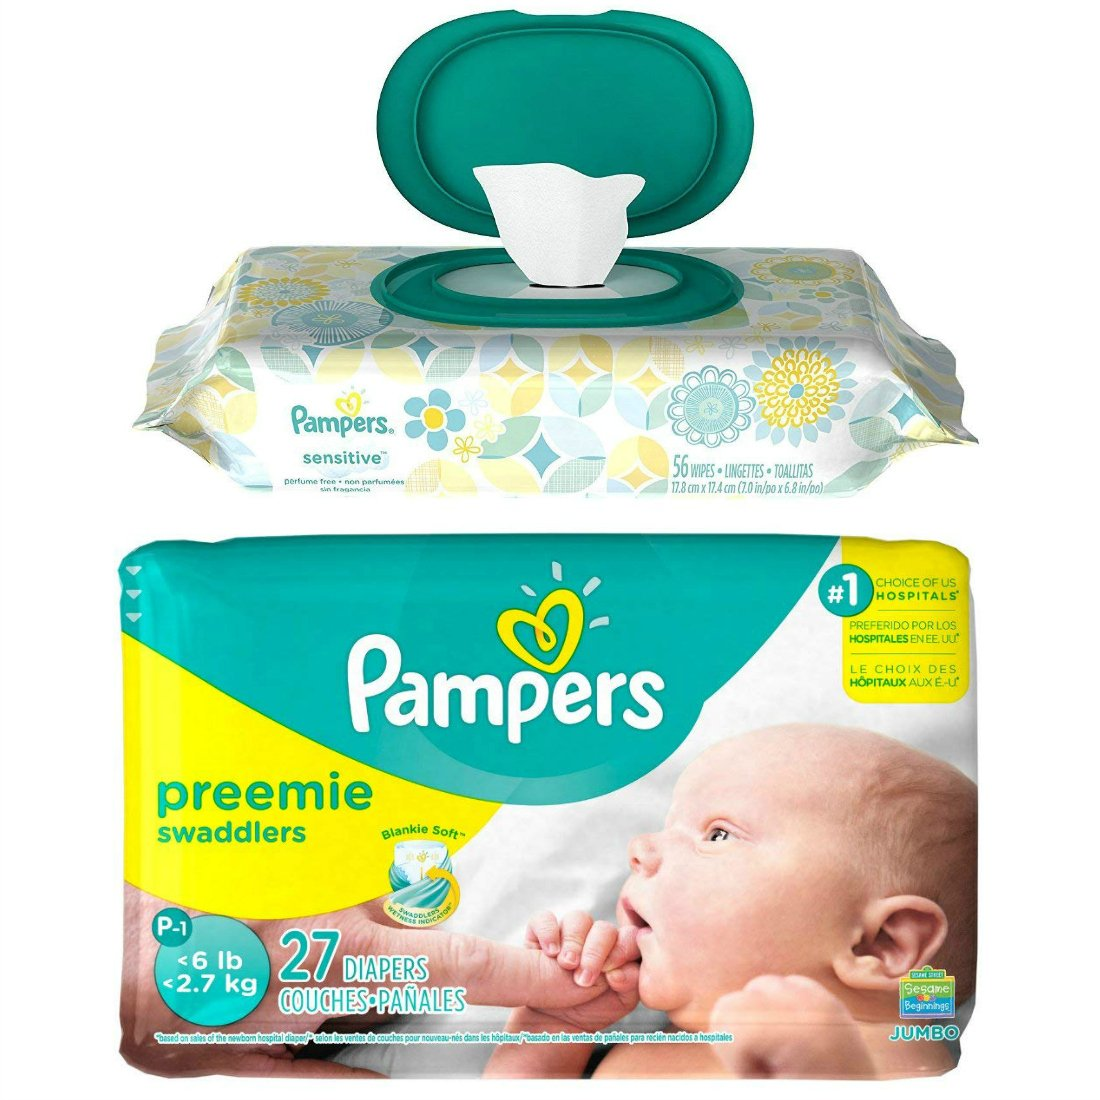 Diaper/Baby Wipe Travel Pack | Includes Pampers Swaddlers (Preemie - up to 6 lbs) | 27 Count and Sensitive Wipes Resealable Pop-Top Container (56 Count)